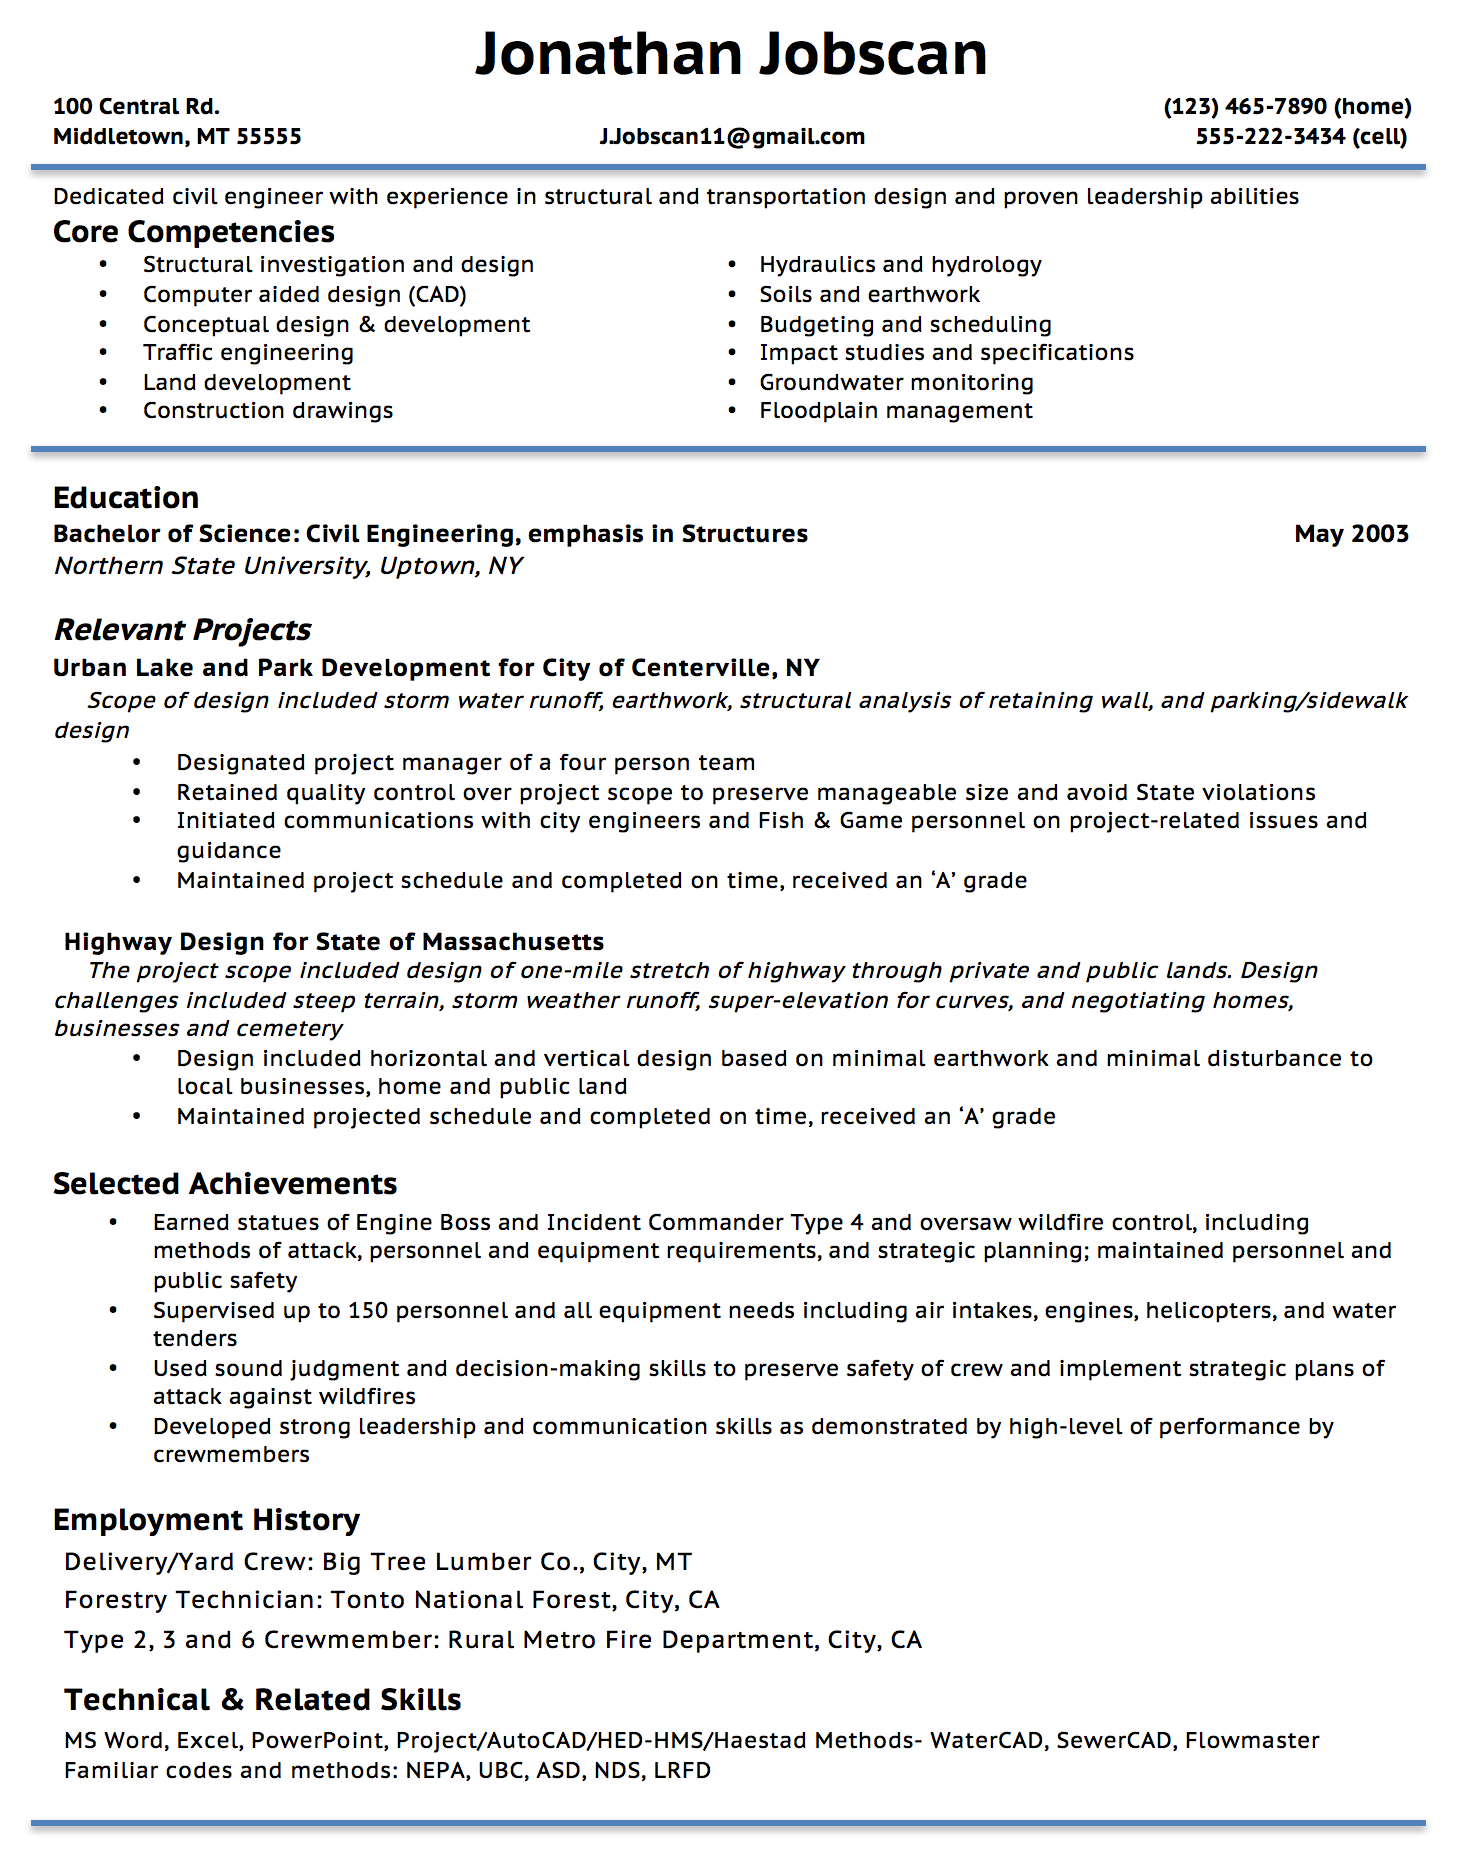 Opposenewapstandardsus  Inspiring Resume Writing Guide  Jobscan With Exciting Example Of A Functional Resume Format With Lovely Art Resume Also How Do You Do A Resume In Addition Warehouse Associate Resume And What Is A Chronological Resume As Well As Things To Include In A Resume Additionally Leasing Agent Resume From Jobscanco With Opposenewapstandardsus  Exciting Resume Writing Guide  Jobscan With Lovely Example Of A Functional Resume Format And Inspiring Art Resume Also How Do You Do A Resume In Addition Warehouse Associate Resume From Jobscanco